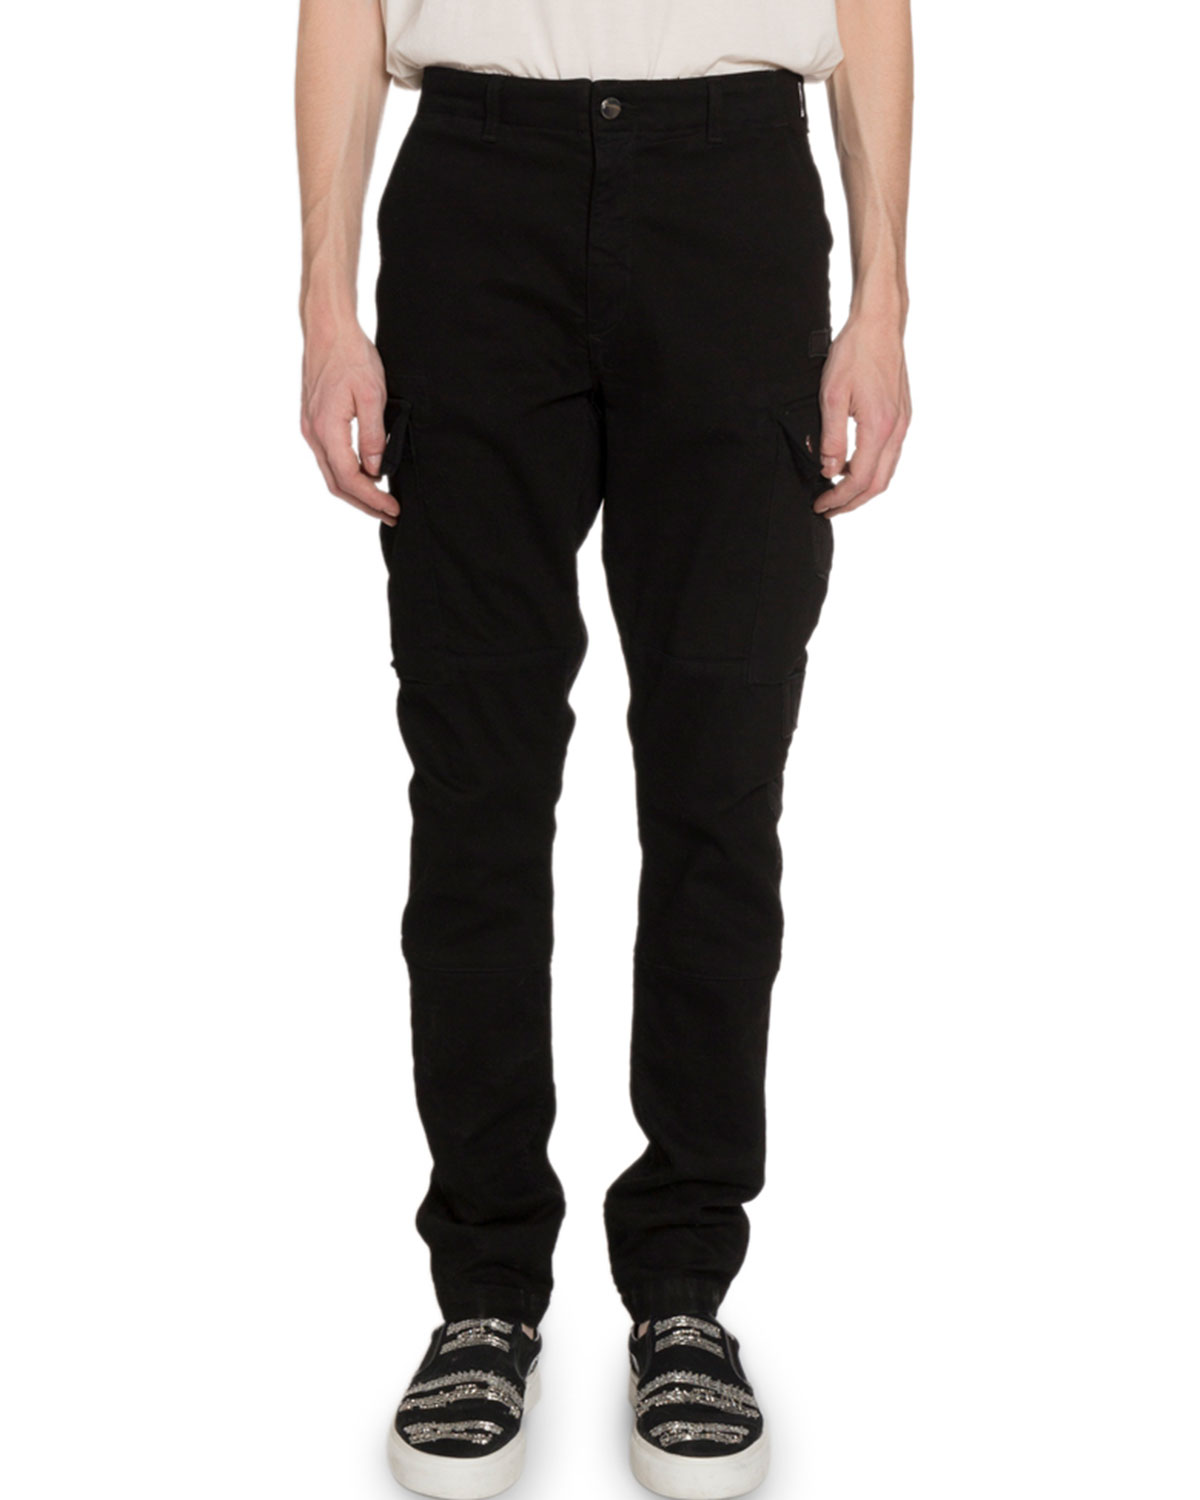 Amiri Pants MEN'S RELAXED STRETCH-TWILL CARGO PANTS